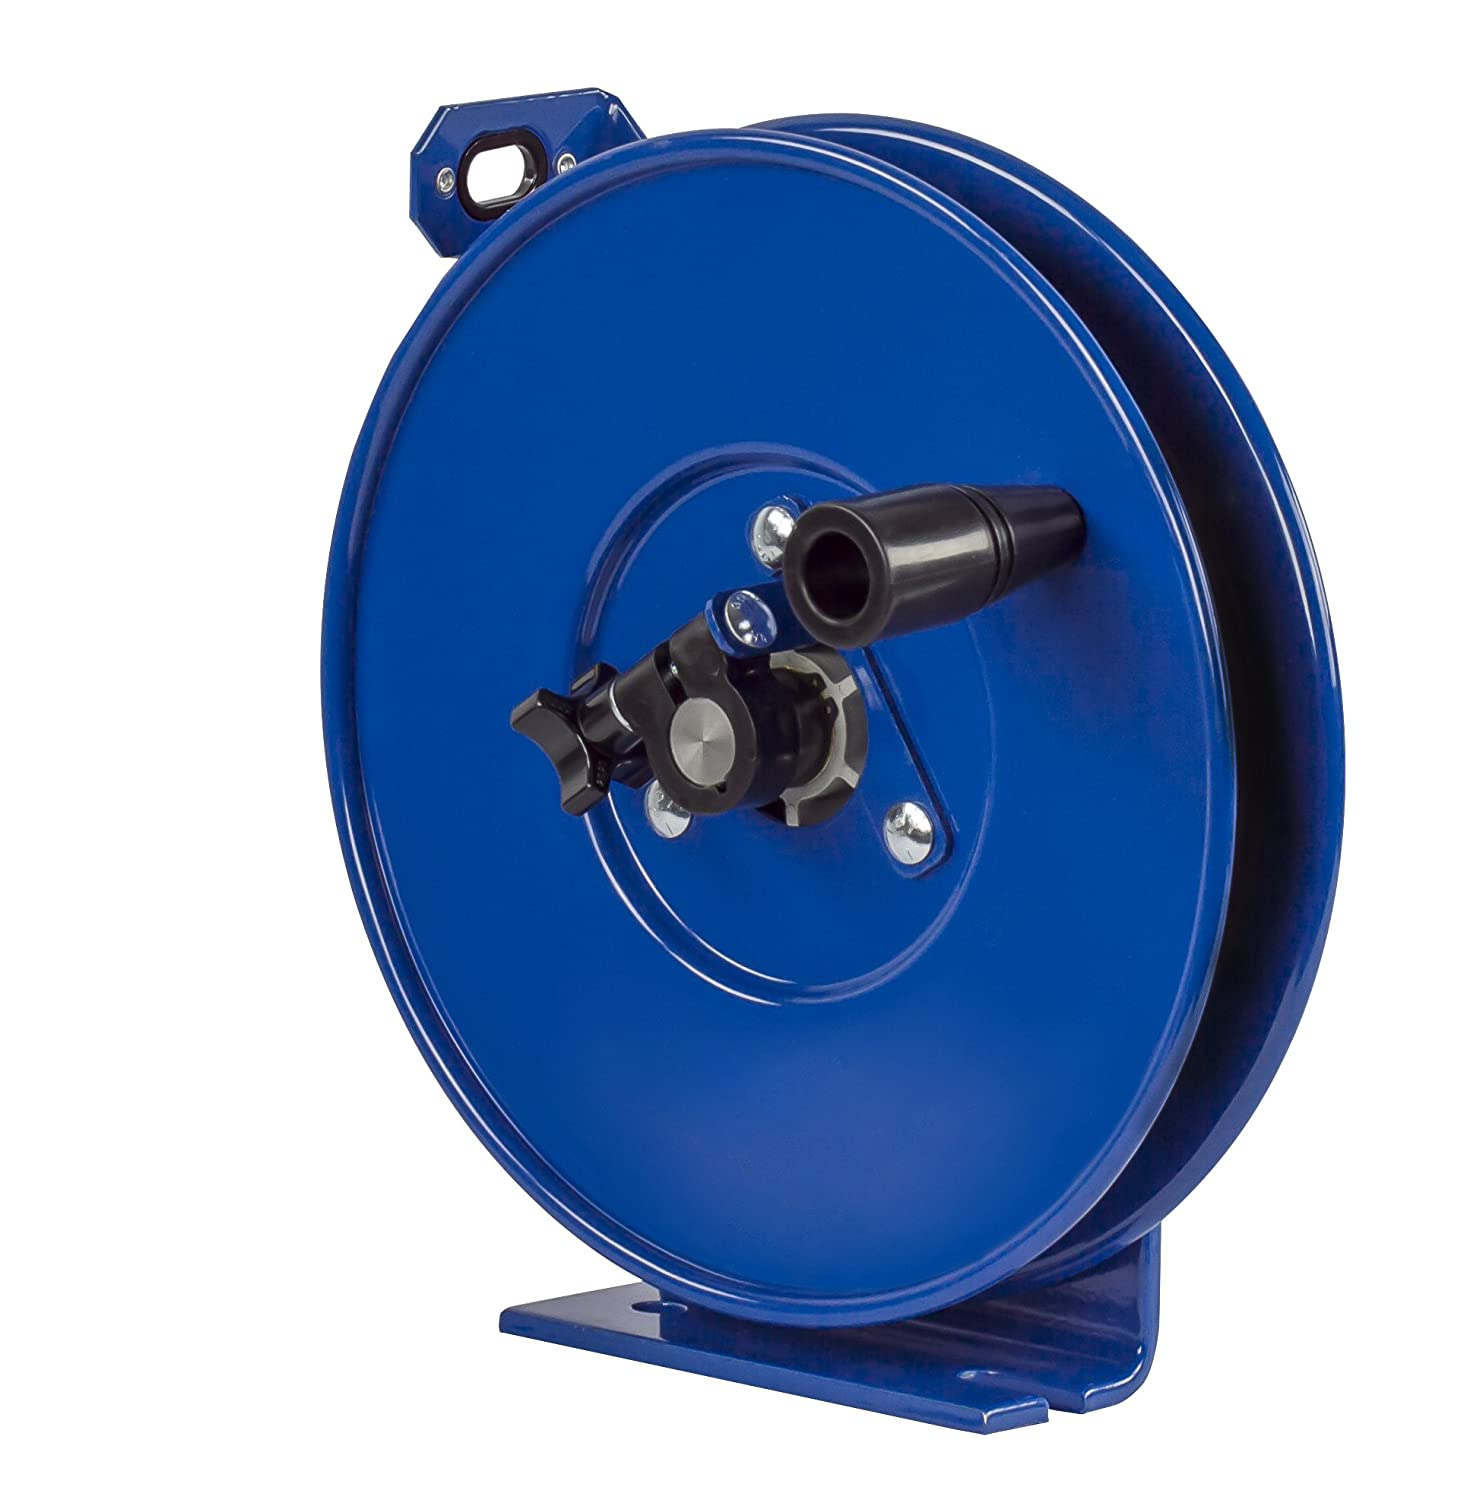 Coxreels SDHL-200 Static Discharge Hand Crank Cable Reel: 200' cable, less cable by Coxreels  B005SMXLQK